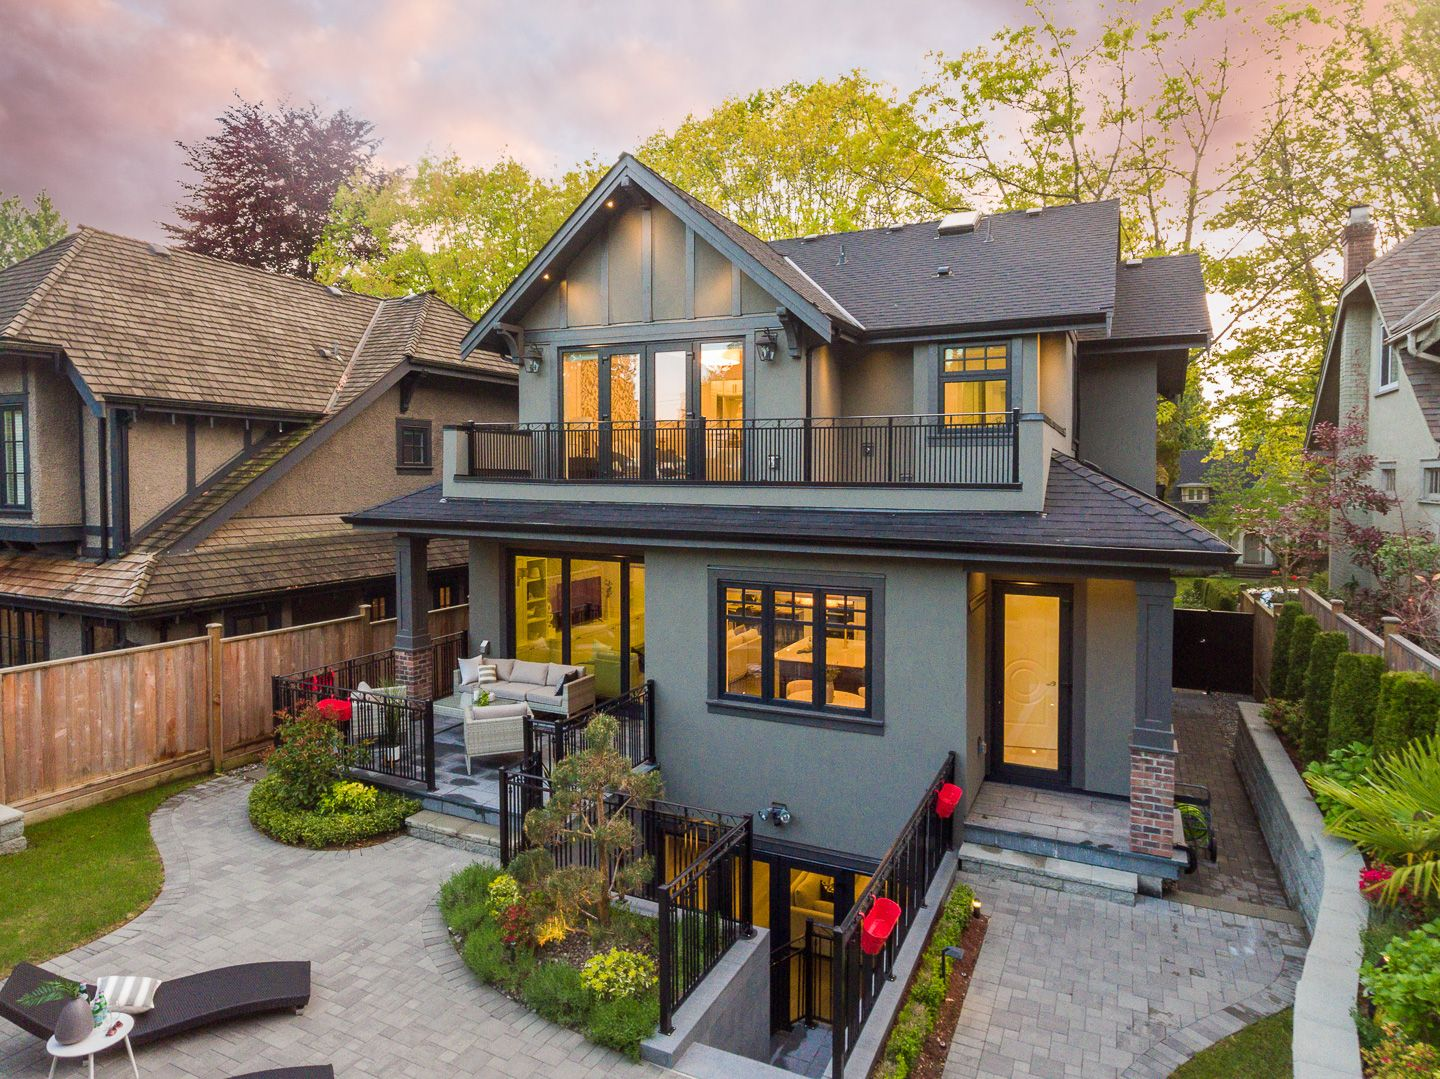 Photo 3: Photos: 5756 ALMA STREET in VANCOUVER: Southlands House for sale (Vancouver West)  : MLS®# R2588229